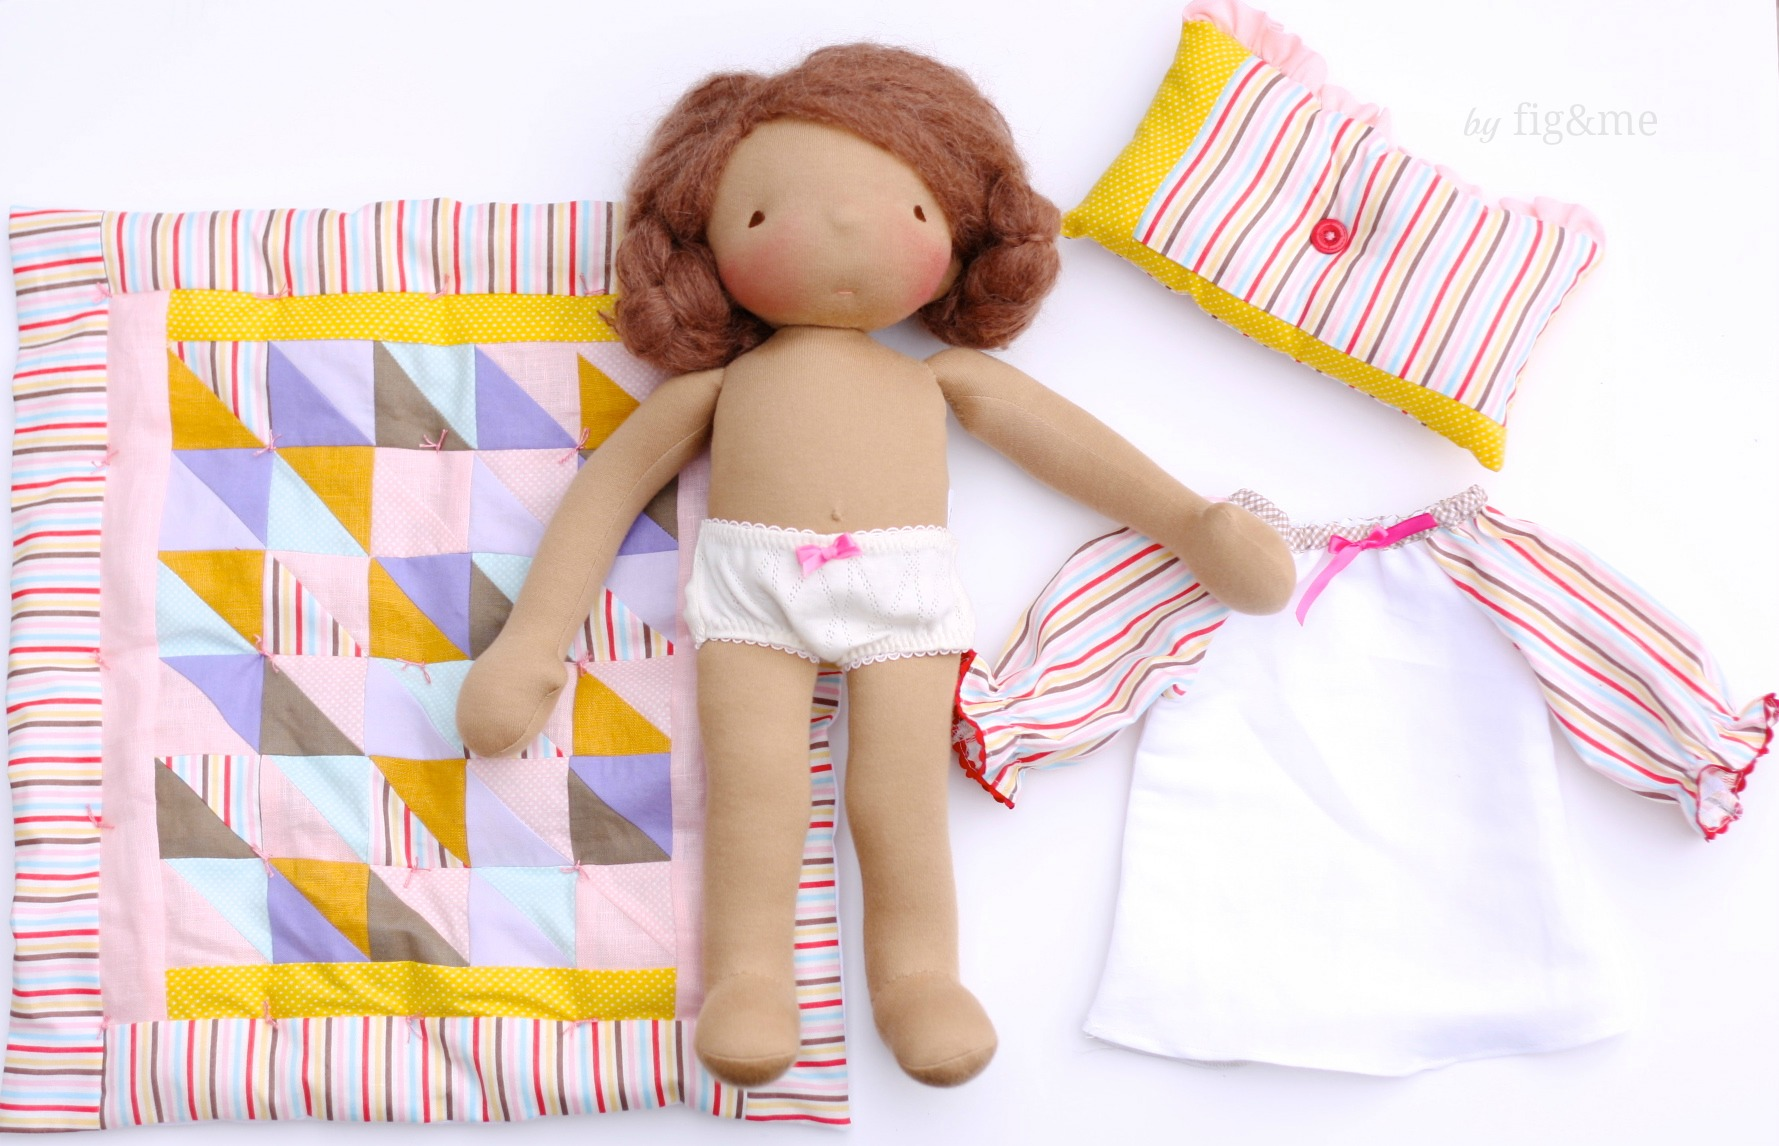 Carlotta and her bedding set, by fig and me.